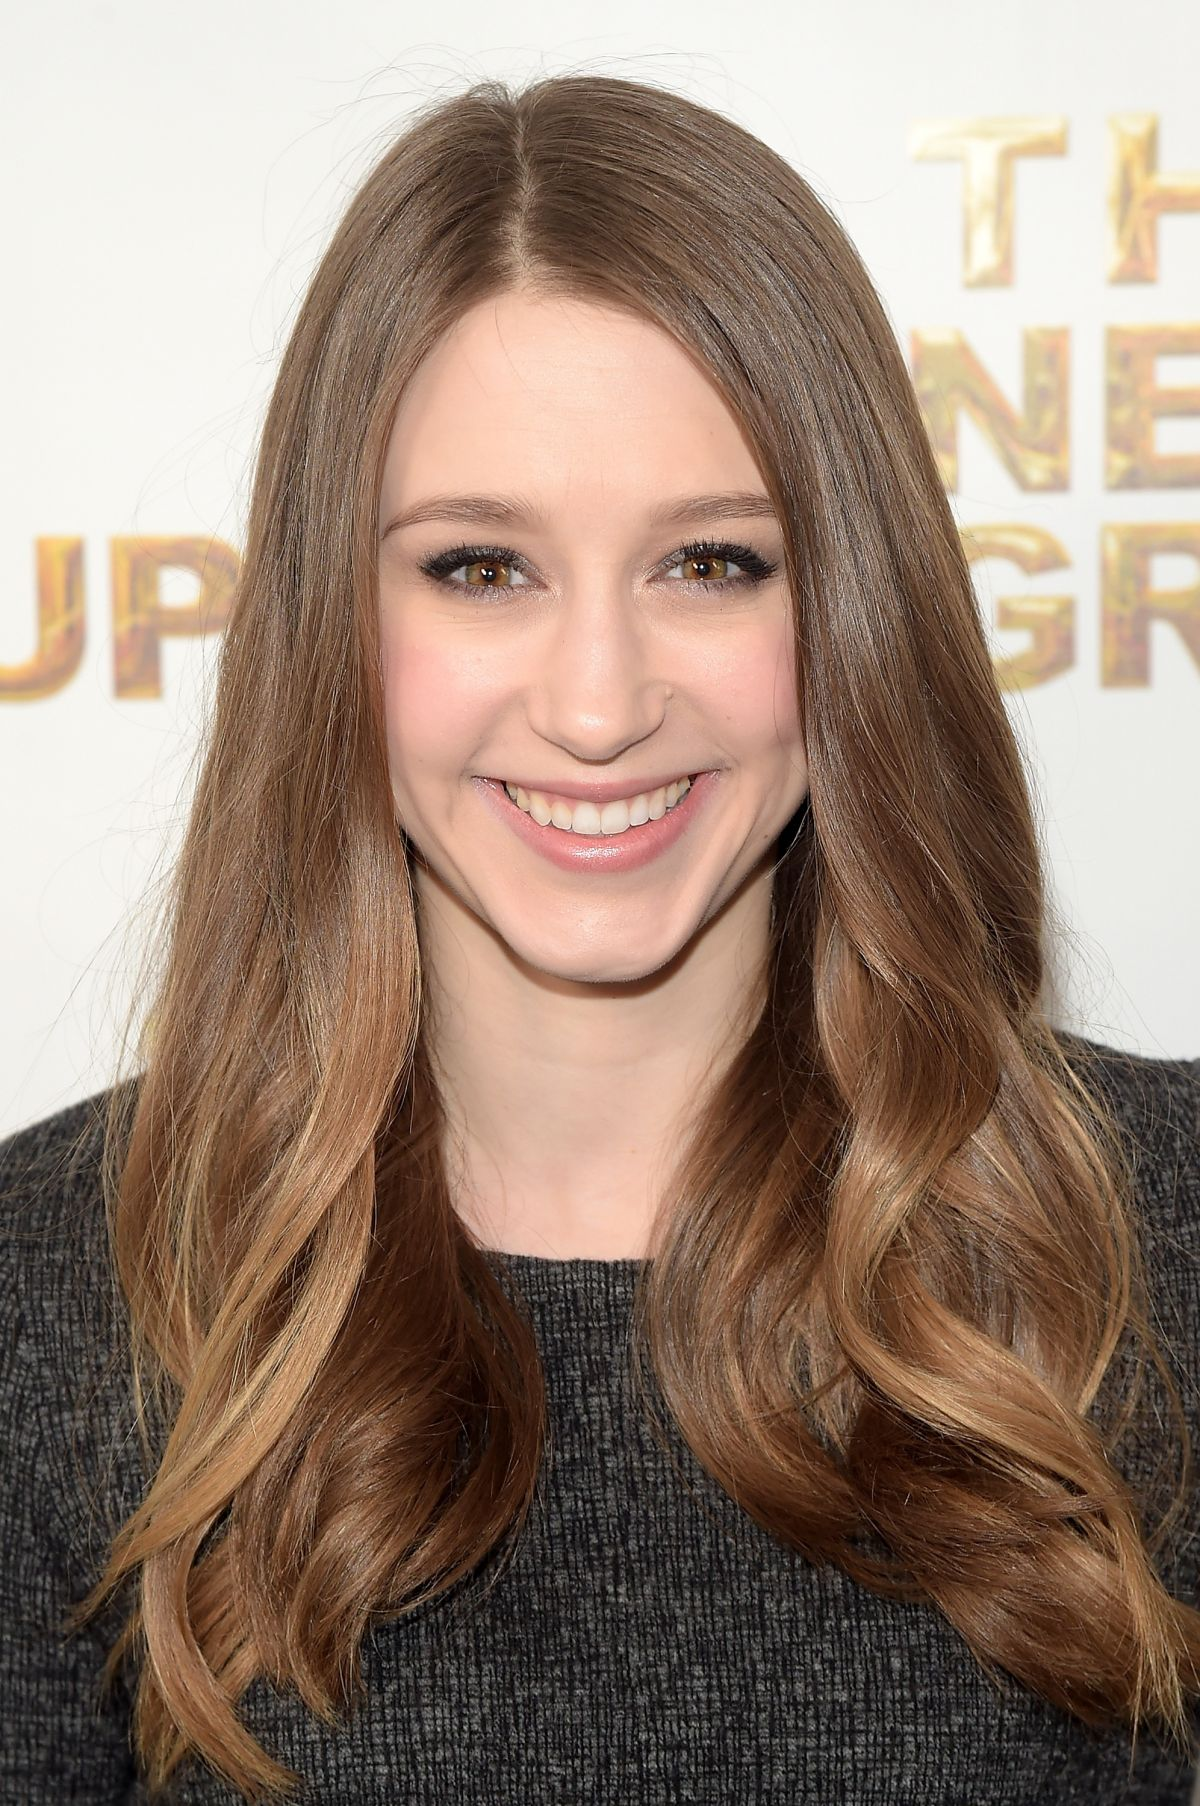 TAISSA FARMIGA at The New Group Gala in New York 03/07/2016